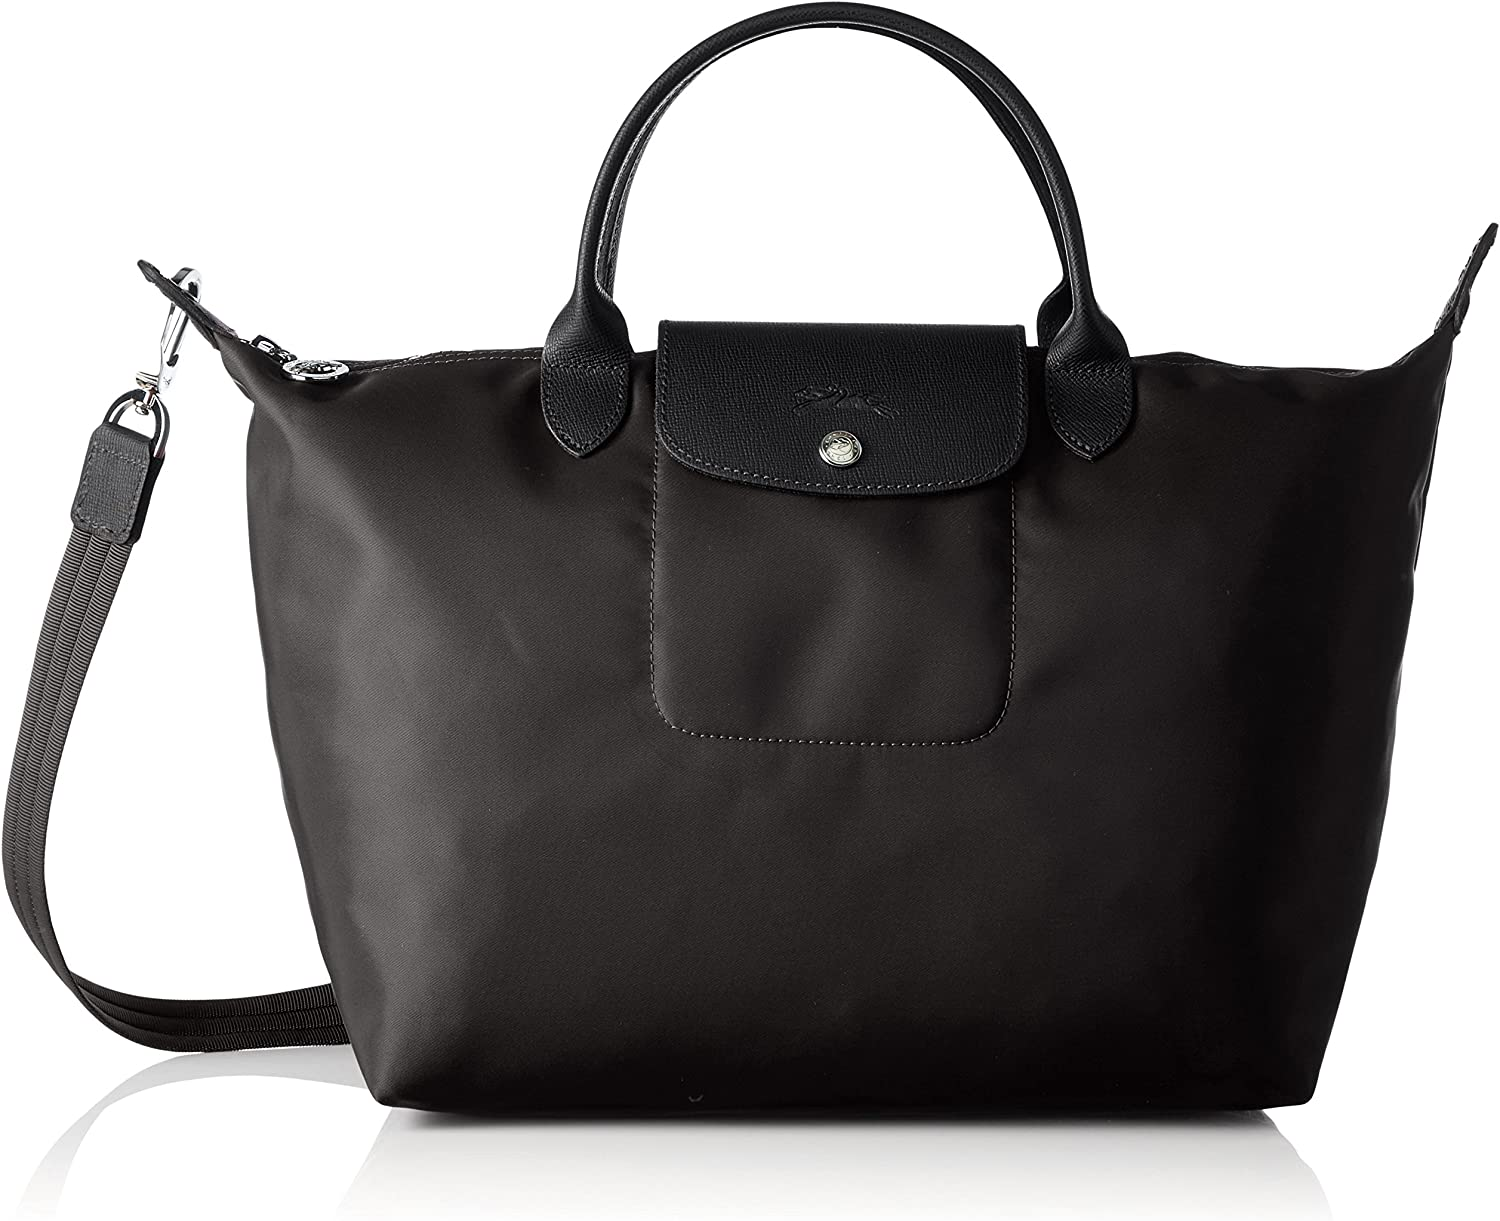 Longchamp Le Finally popular brand Pliage Neo Top-Handle Black Spring new work one after another Medium Size One Bag